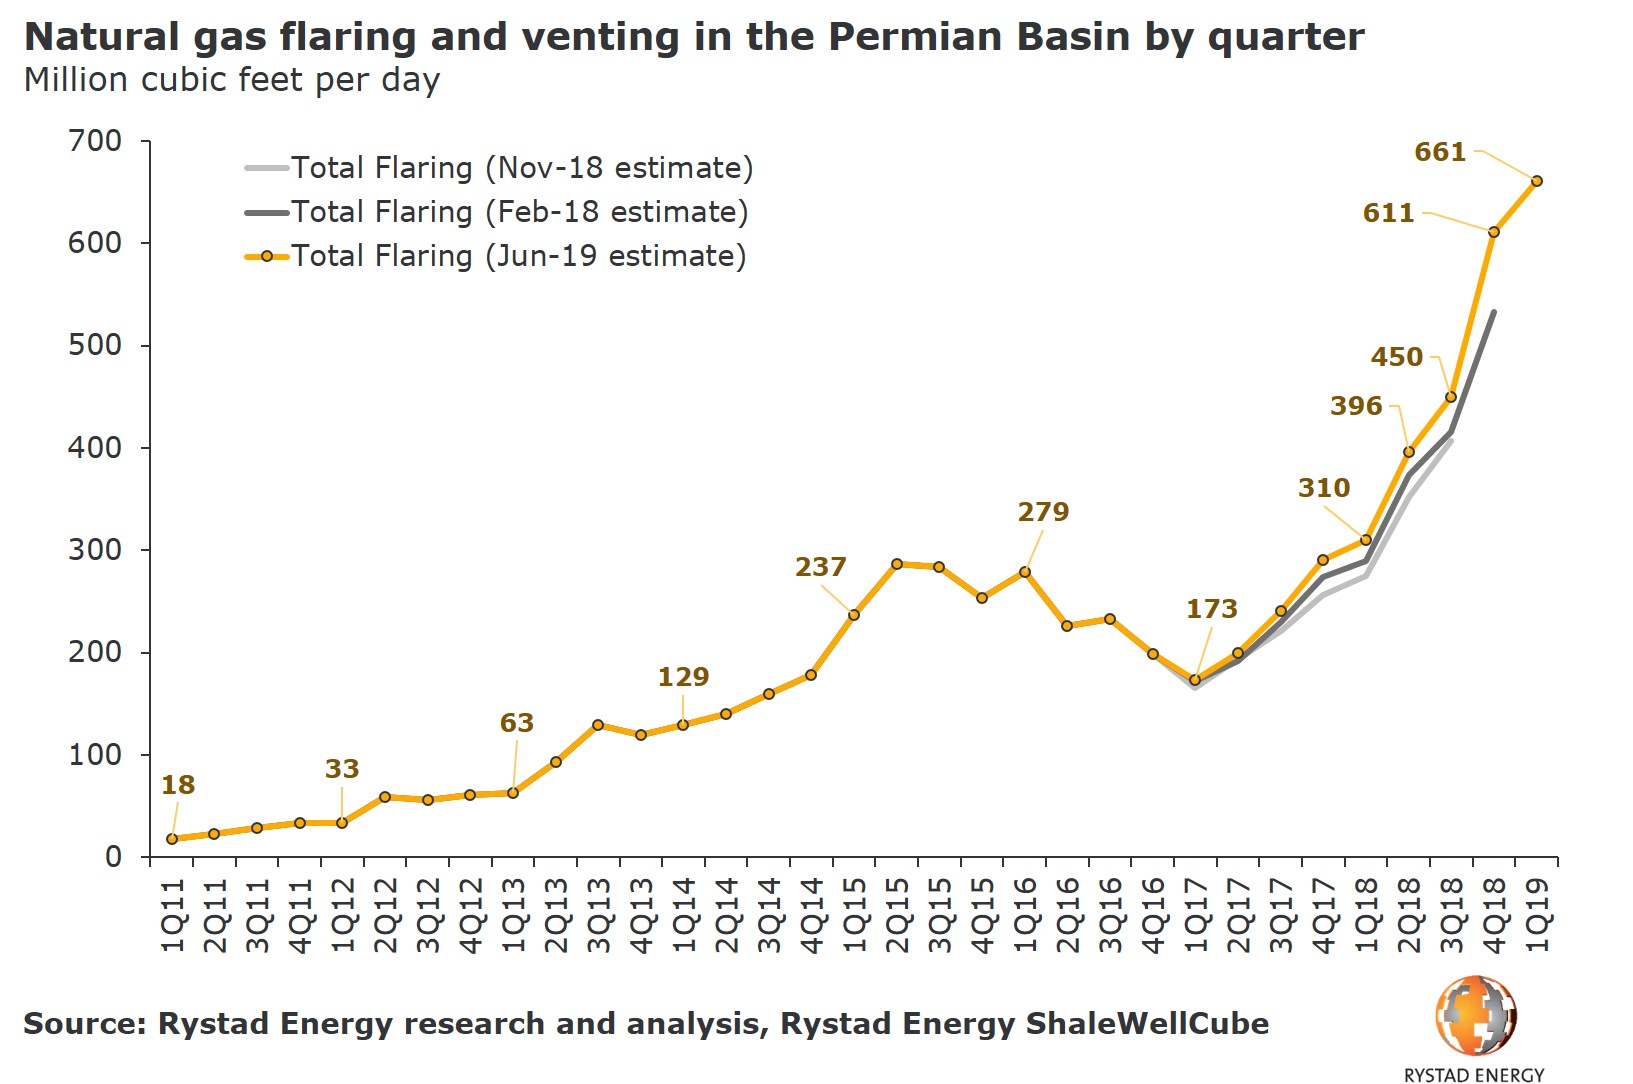 A graph showing the natural gas flaring and venting in the Permian Basin by quarter in Million cubic feet per day from 2011 to 2019. Source: Rystad Energy ShaleWellCube